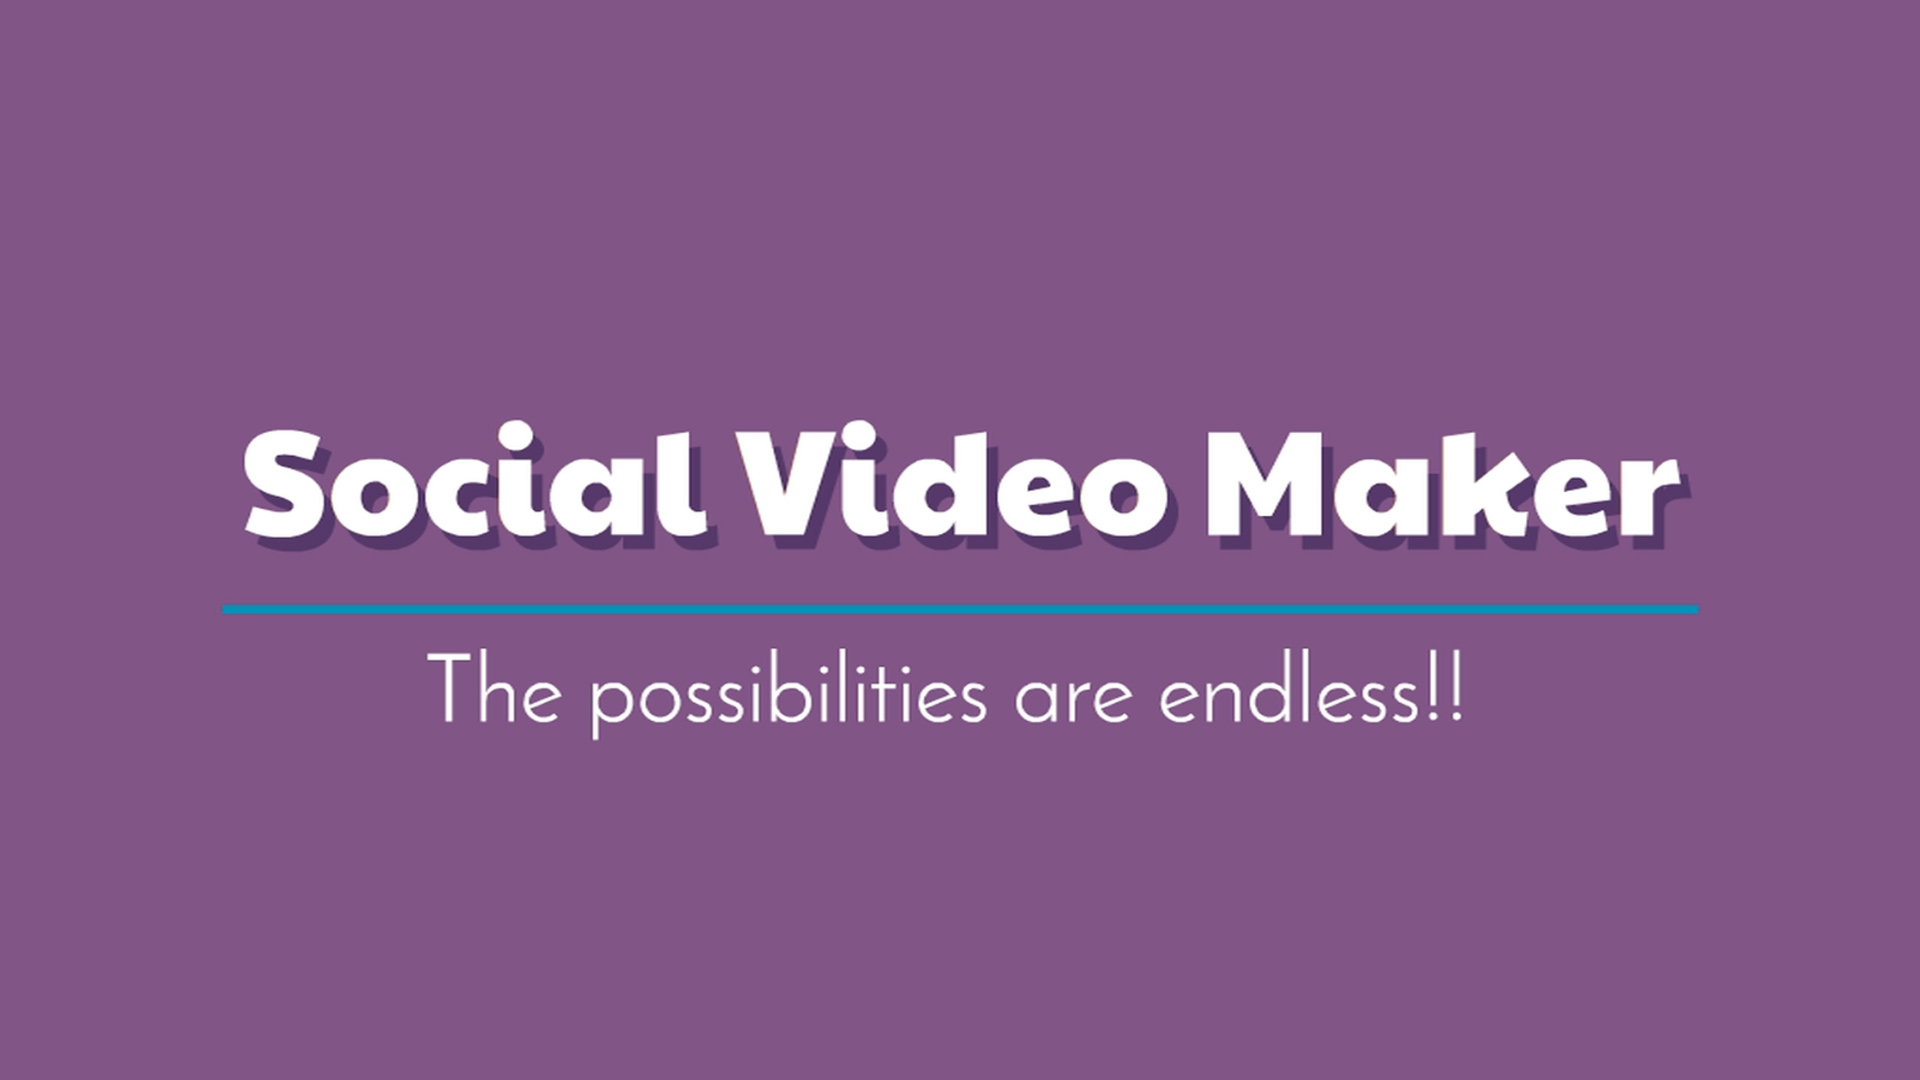 I can make a social media videos and posts